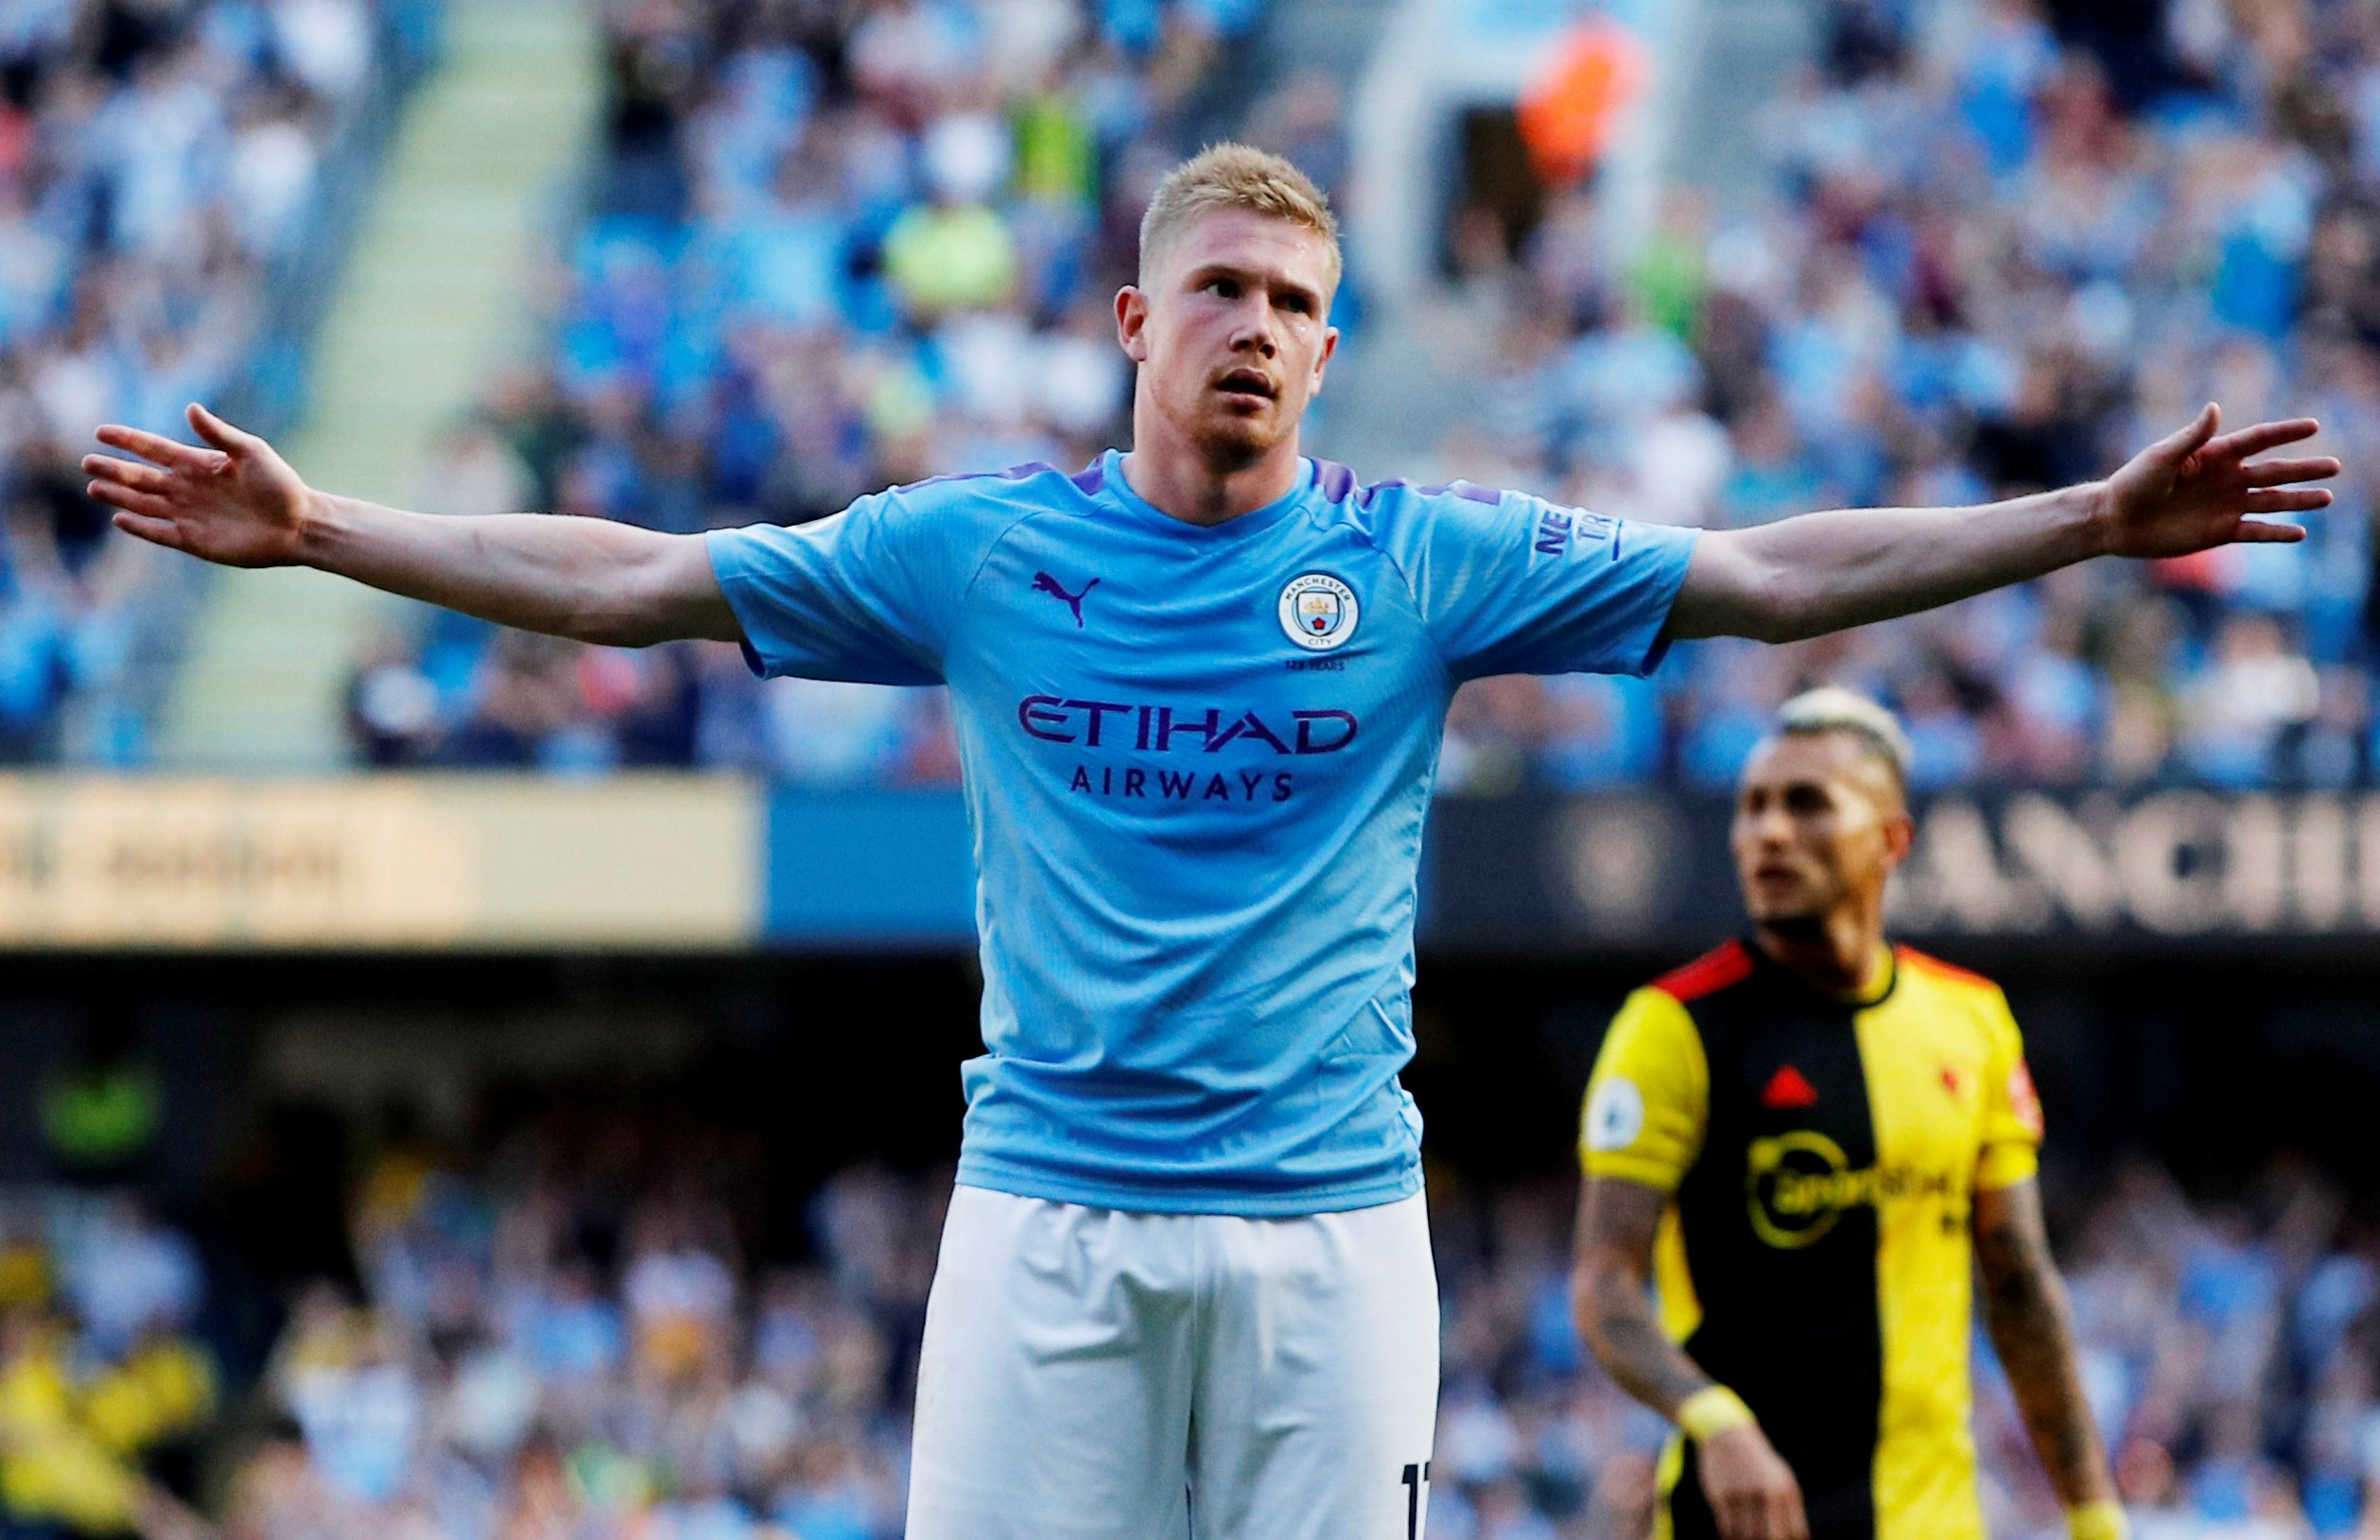 De Bruyne's Future Depends On Sustained CL Ban